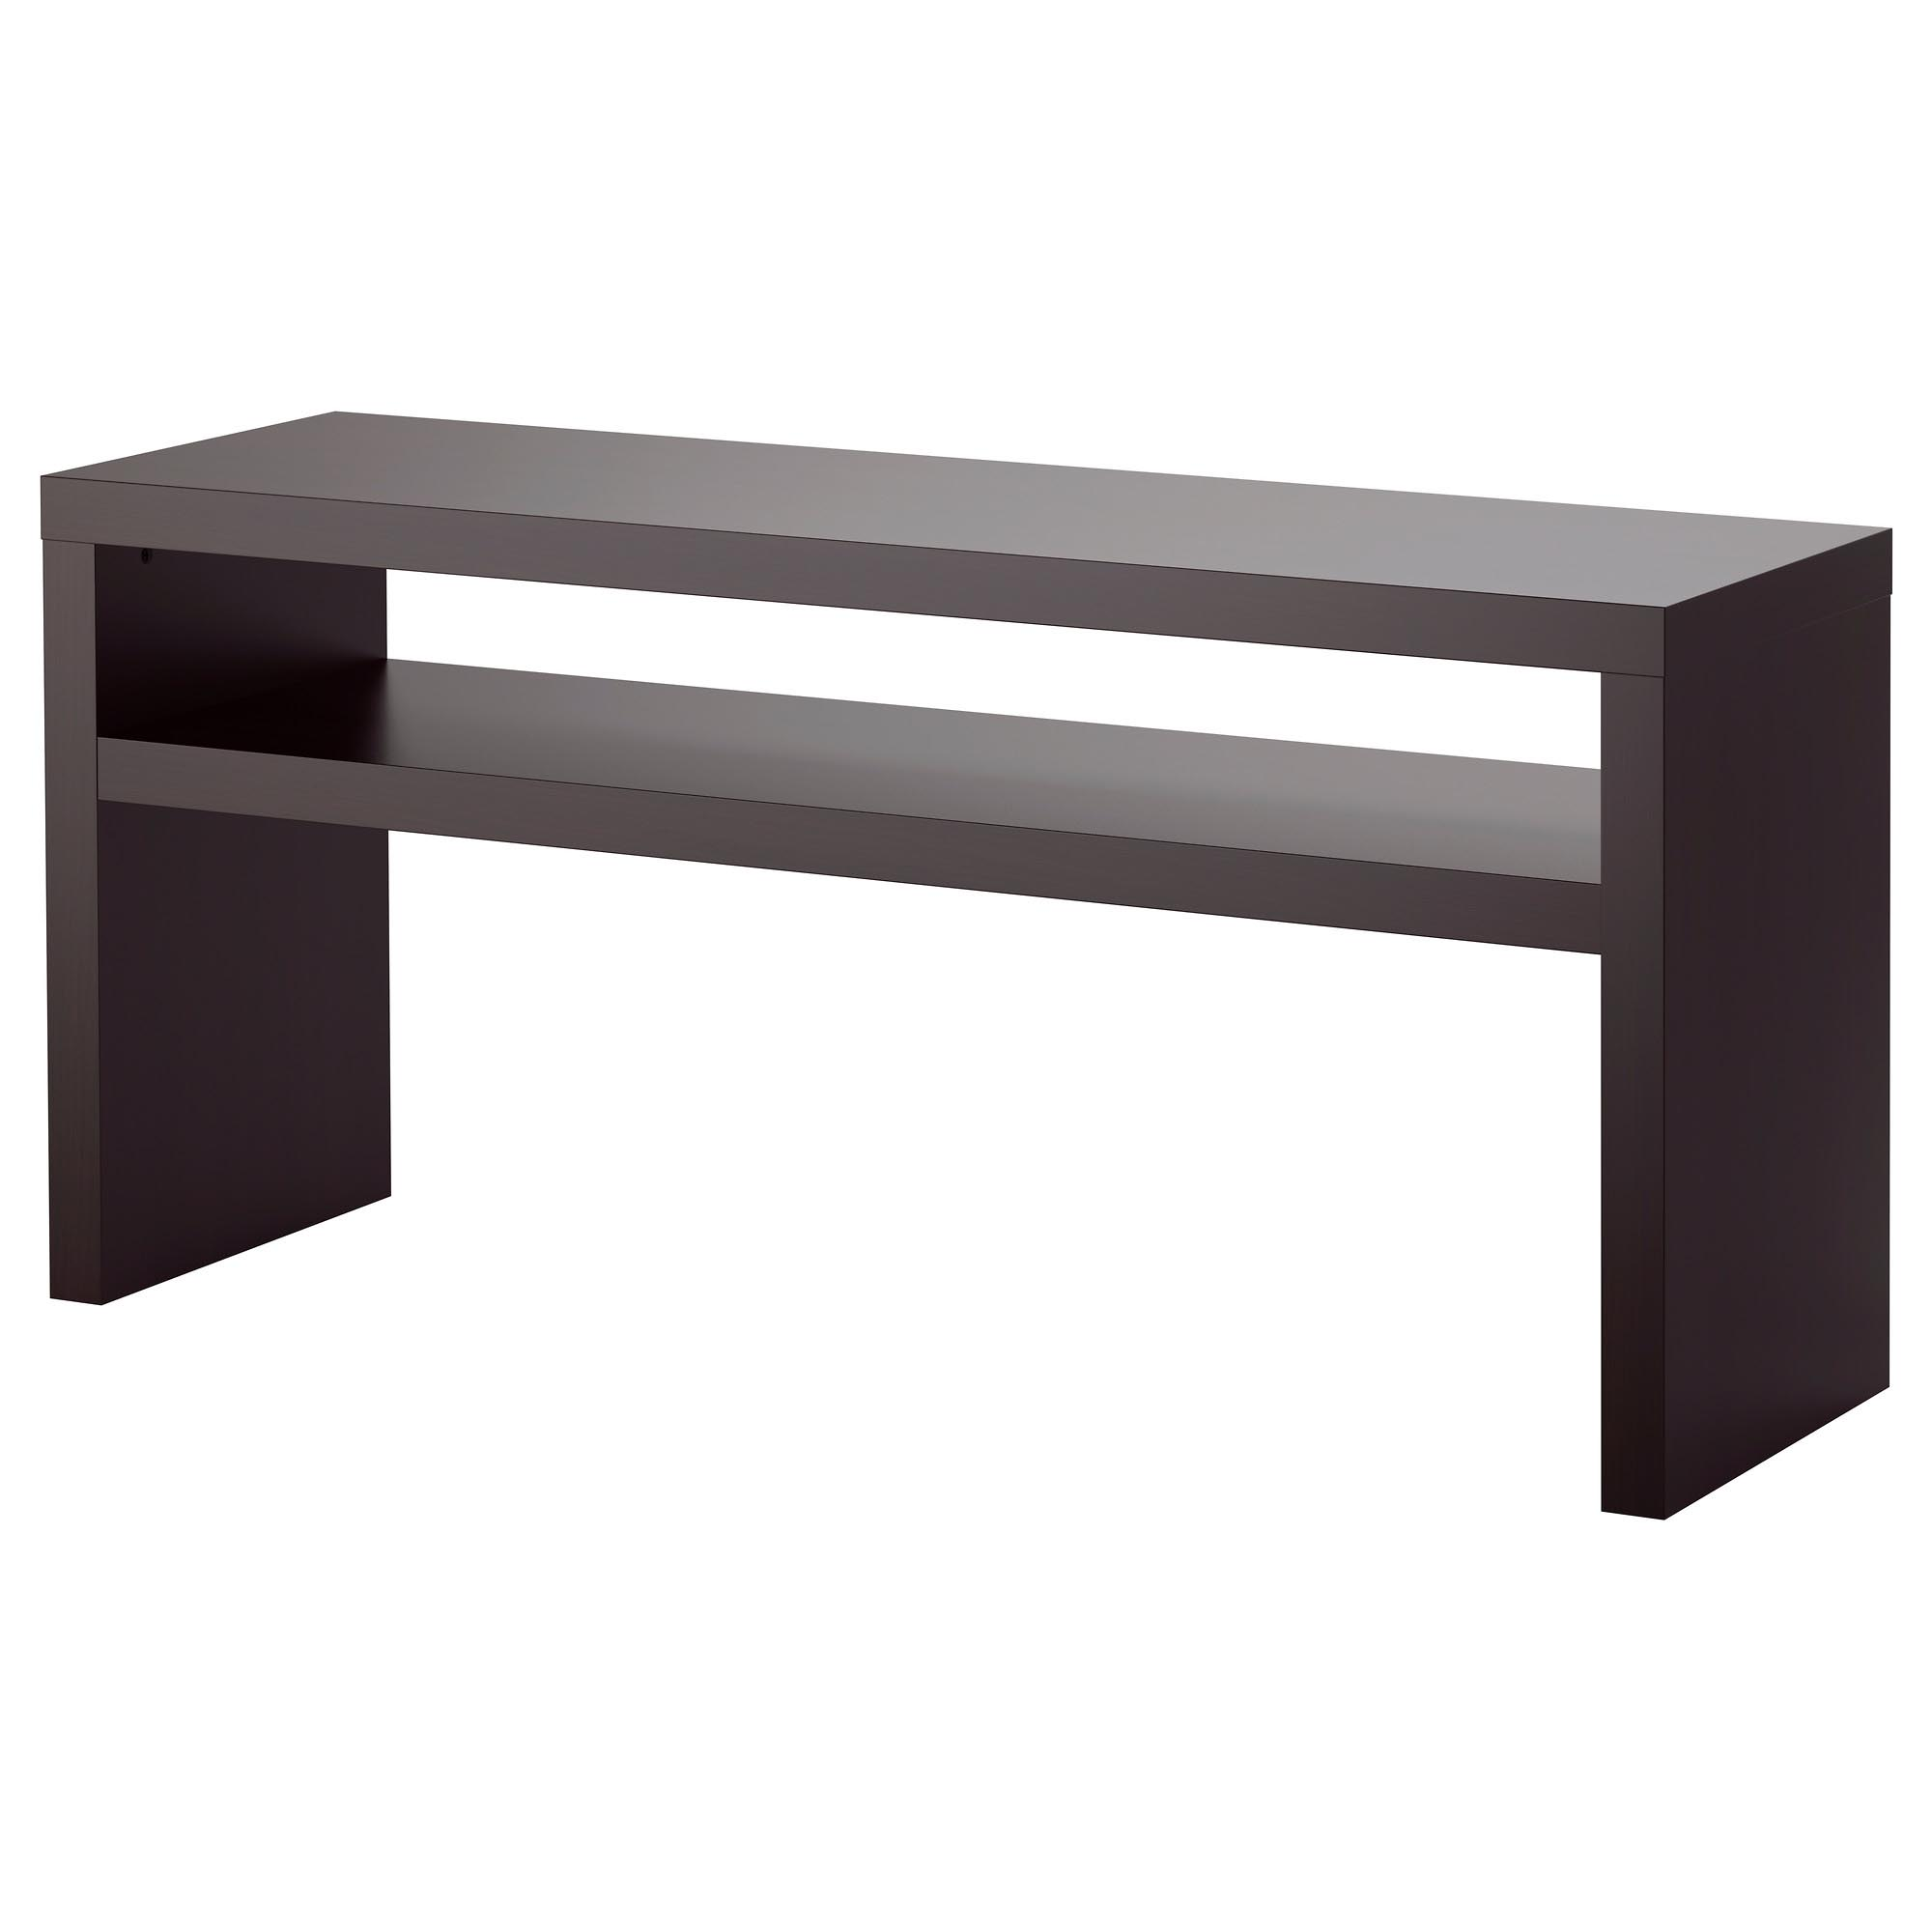 Skinny Coffee Table IKEA